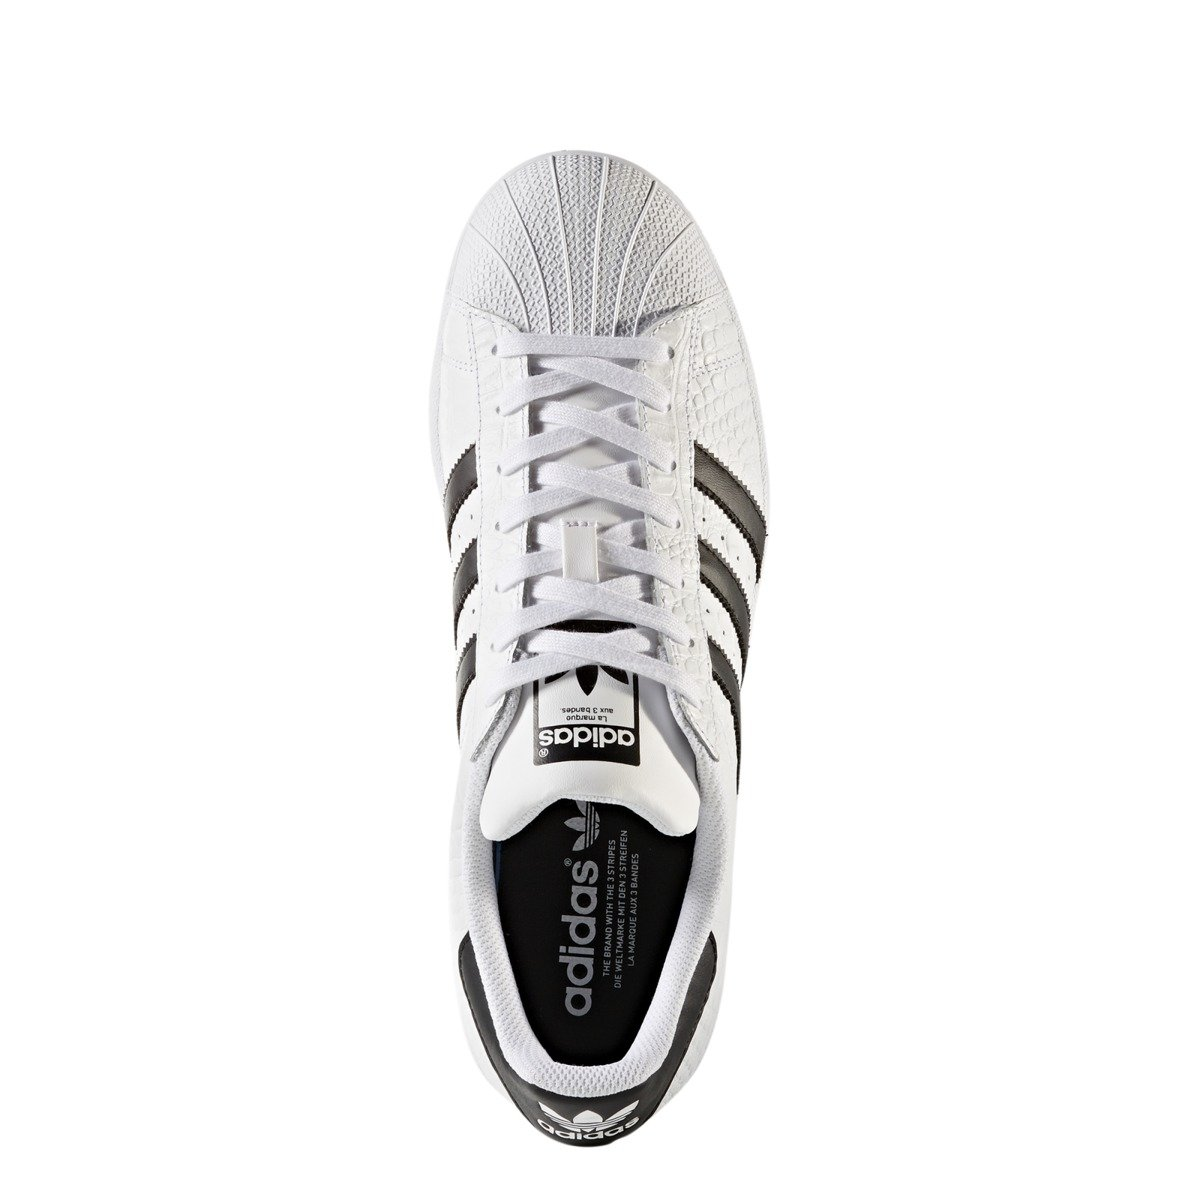 adidas originals superstar animal print bz0198